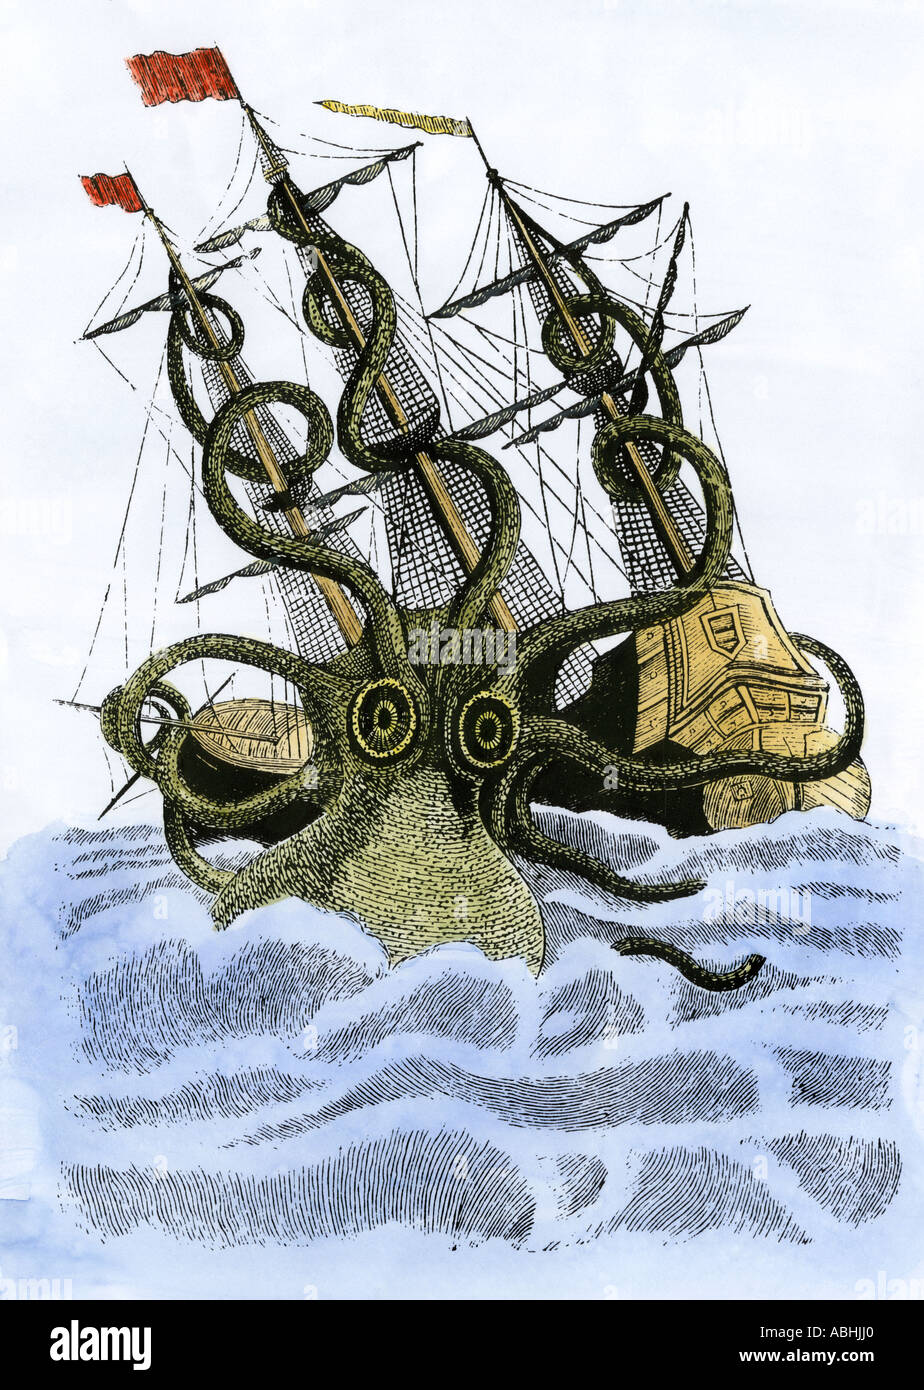 Kraken, or giant squid, attacking a sailing ship in medieval times. Hand-colored woodcut - Stock Image